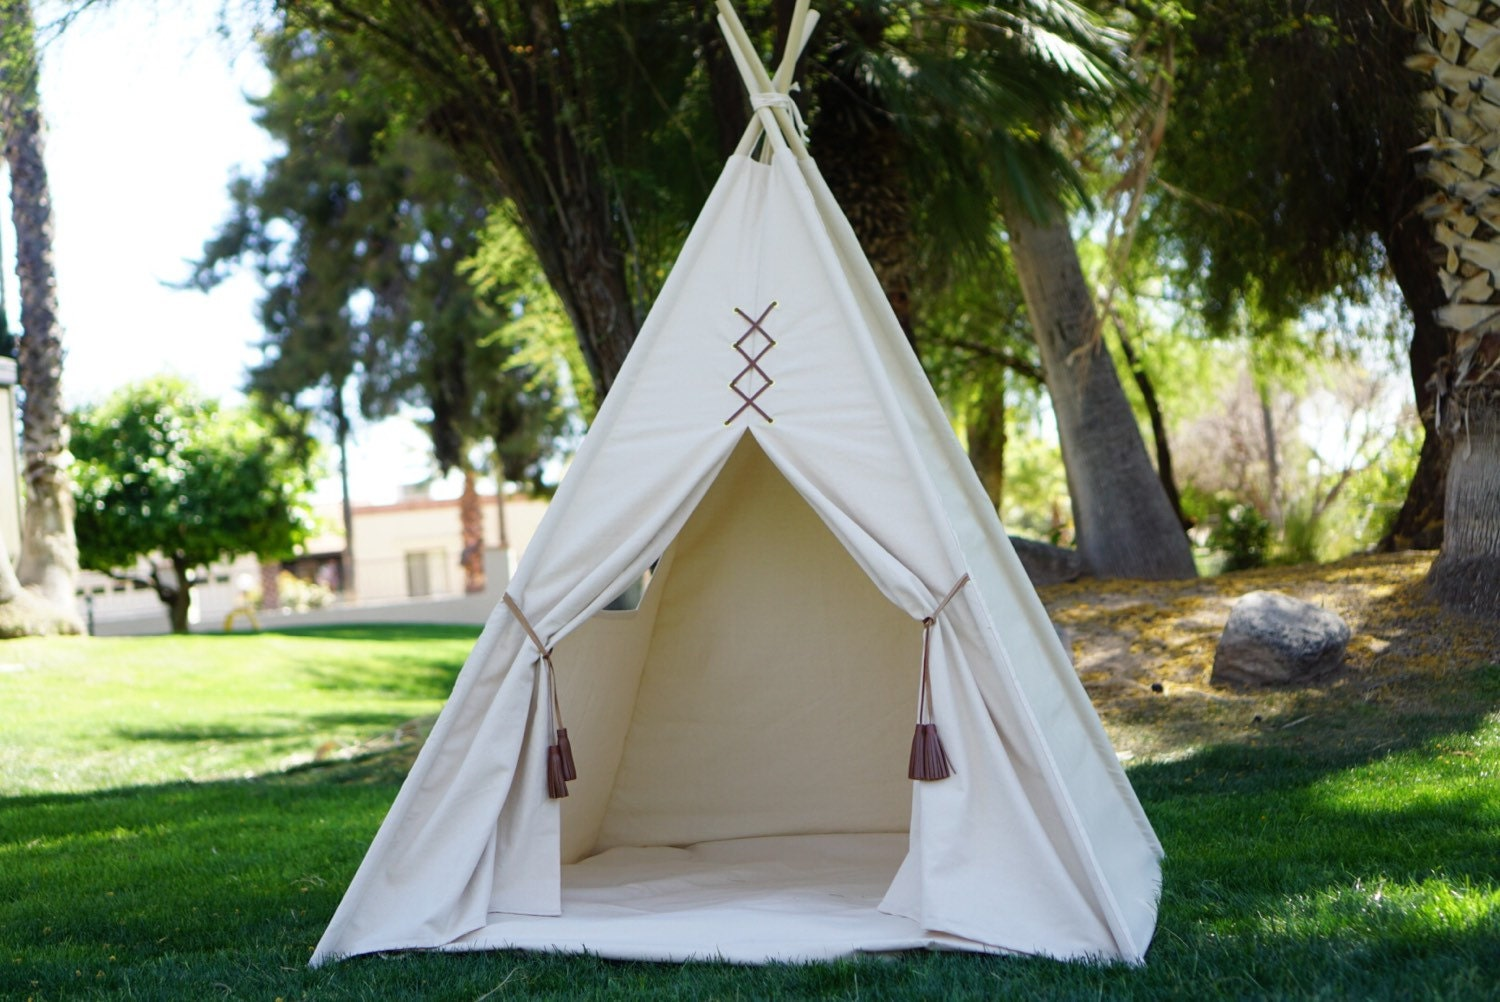 Teepee Original teepee kids Teepee tipi Play tent wigwam or playhouse with canvas and leather tassel Door Ties & Teepee Original teepee kids Teepee tipi Play tent wigwam or ...